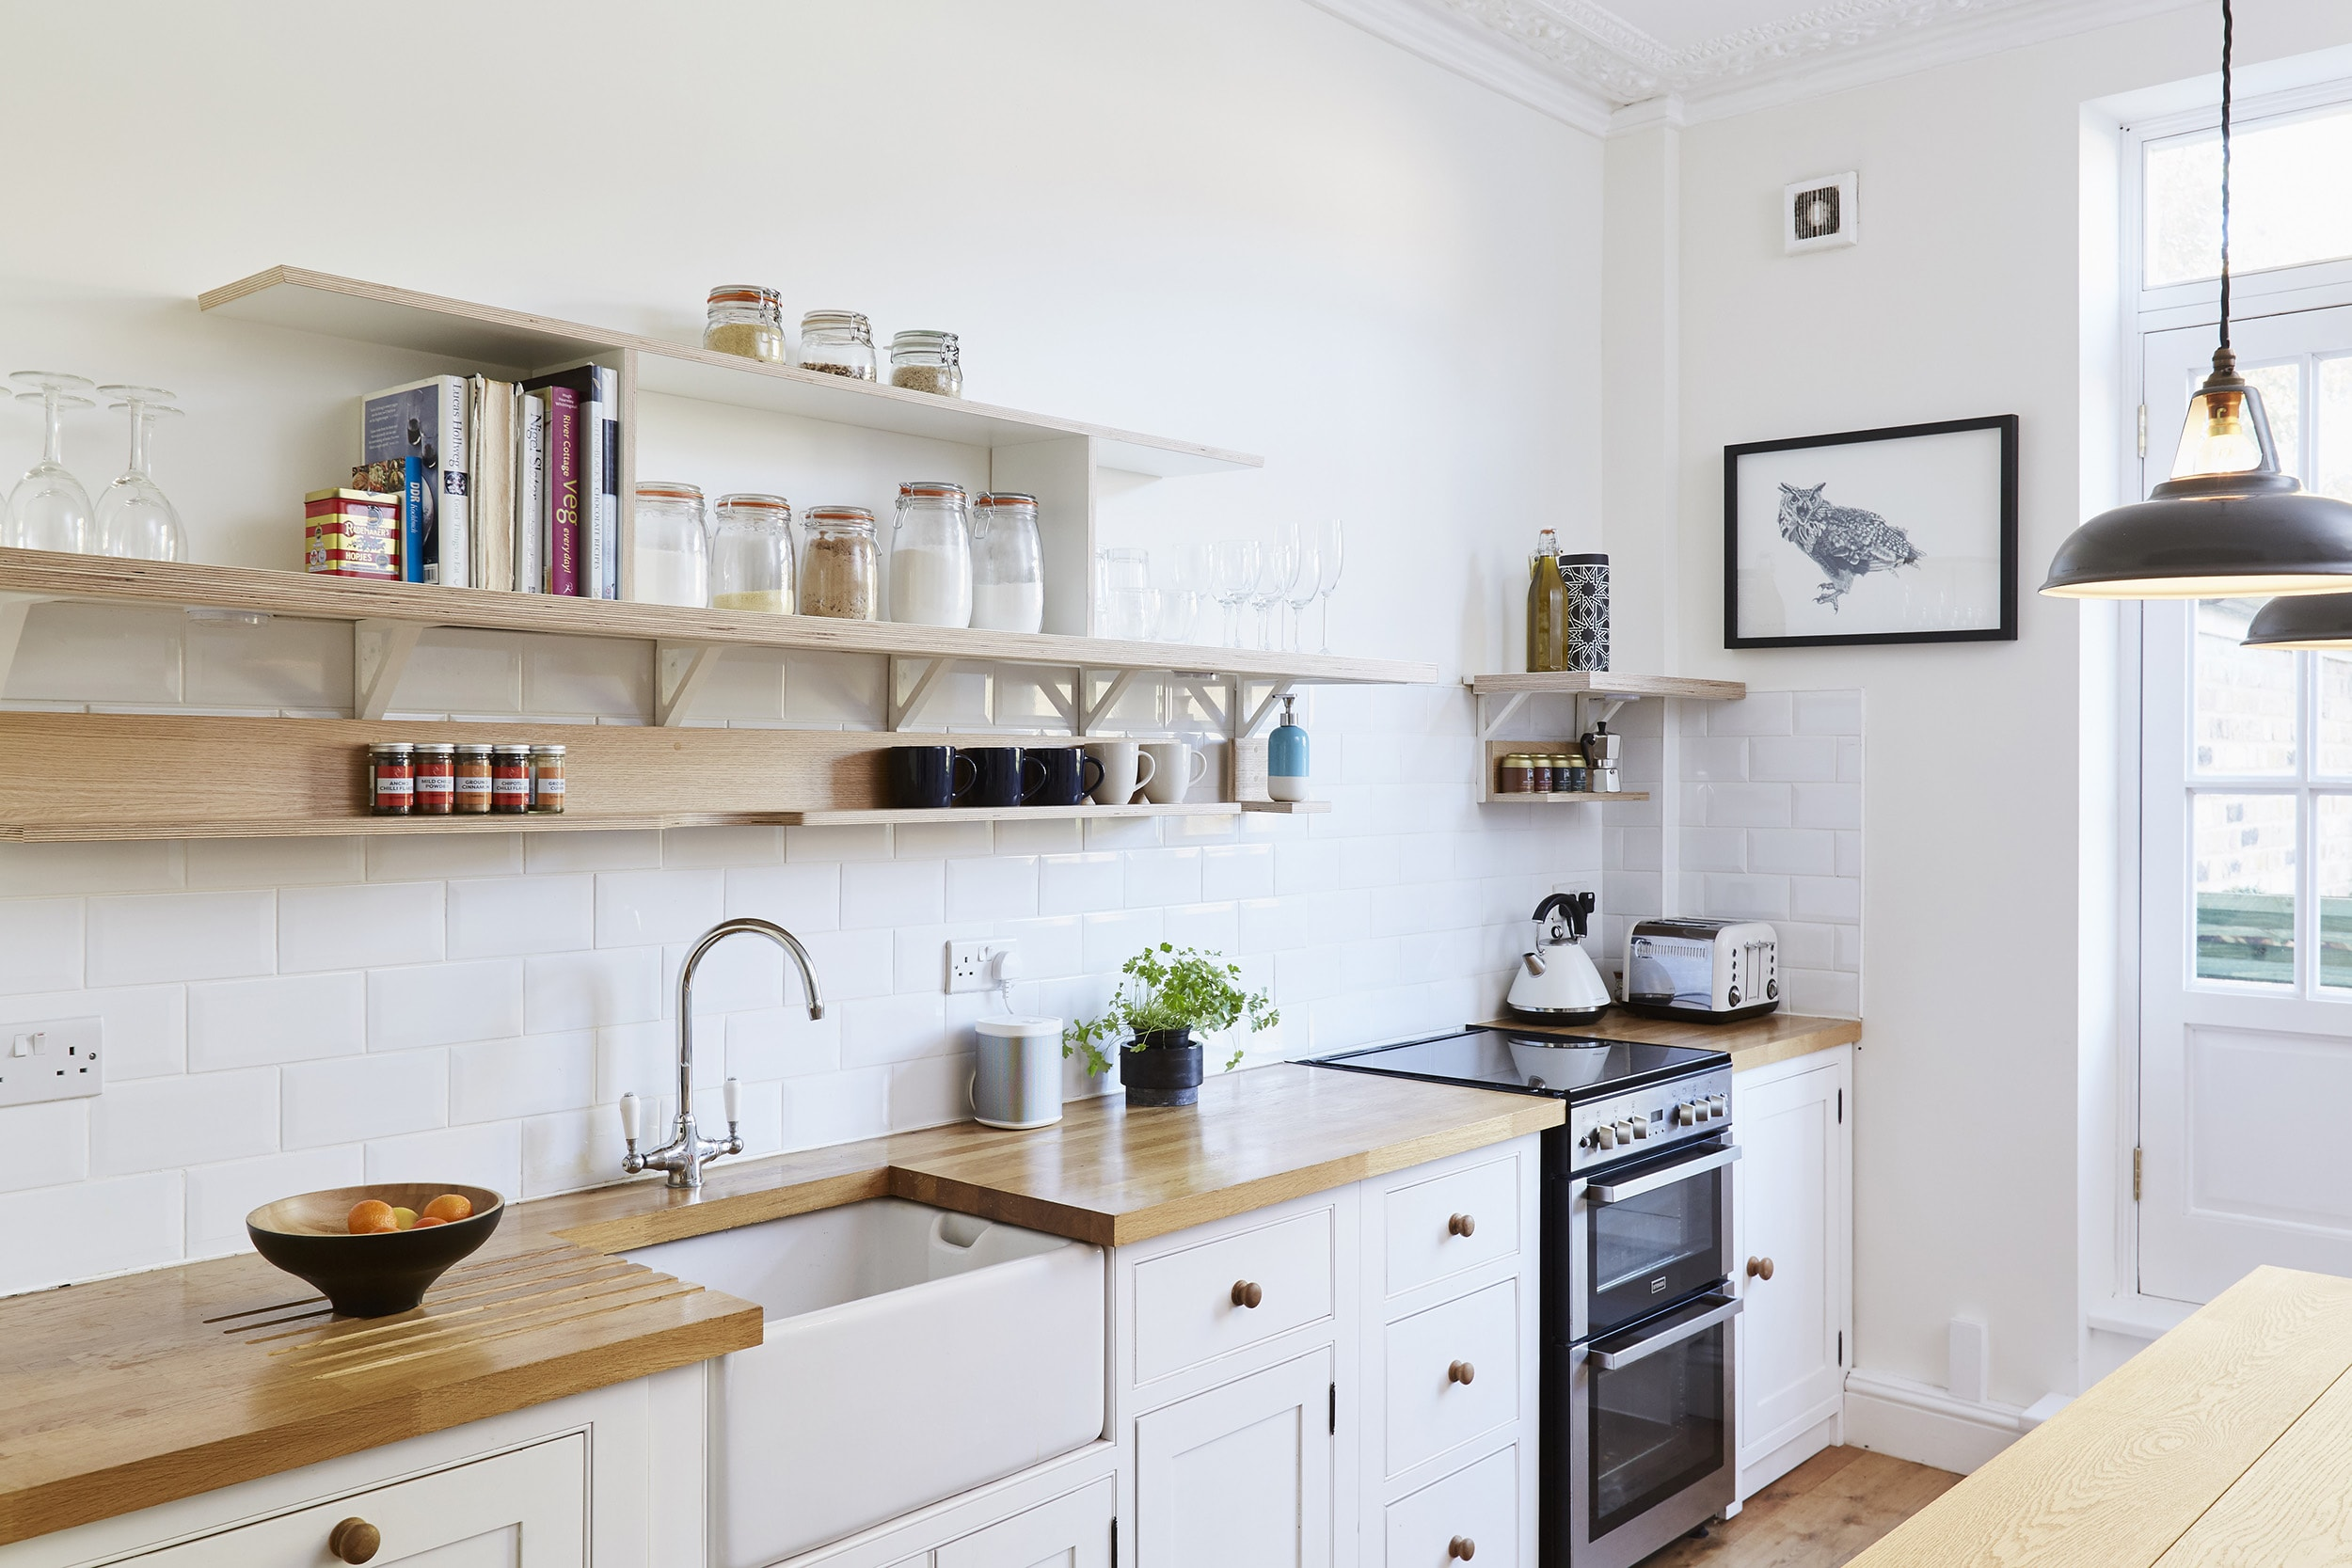 Lozi's bespoke plywood shelving system was designed to fit around the existing kitchen design, creating extra storage that is easily accessible. The use of open plan shelves rather than cabinets has kept the space bright and airy, allowing light to flow between the kitchen and living room.